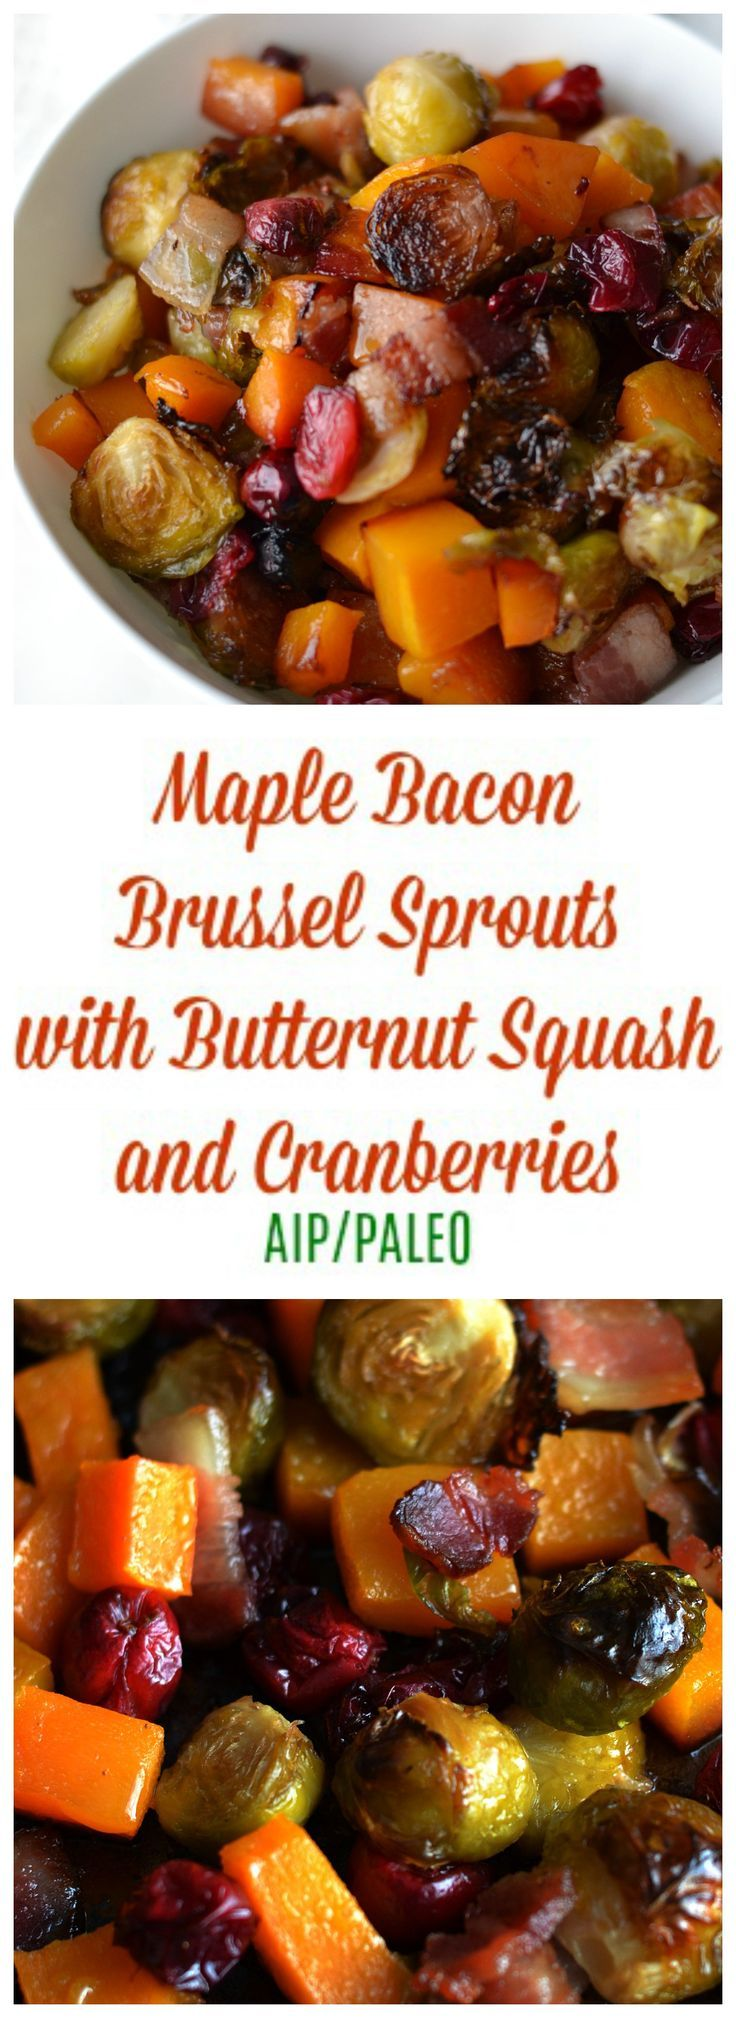 Maple Bacon Brussel Sprouts with Butternut Squash and Cranberries (AIP/Paleo) | Lichen Paleo, Loving AIP